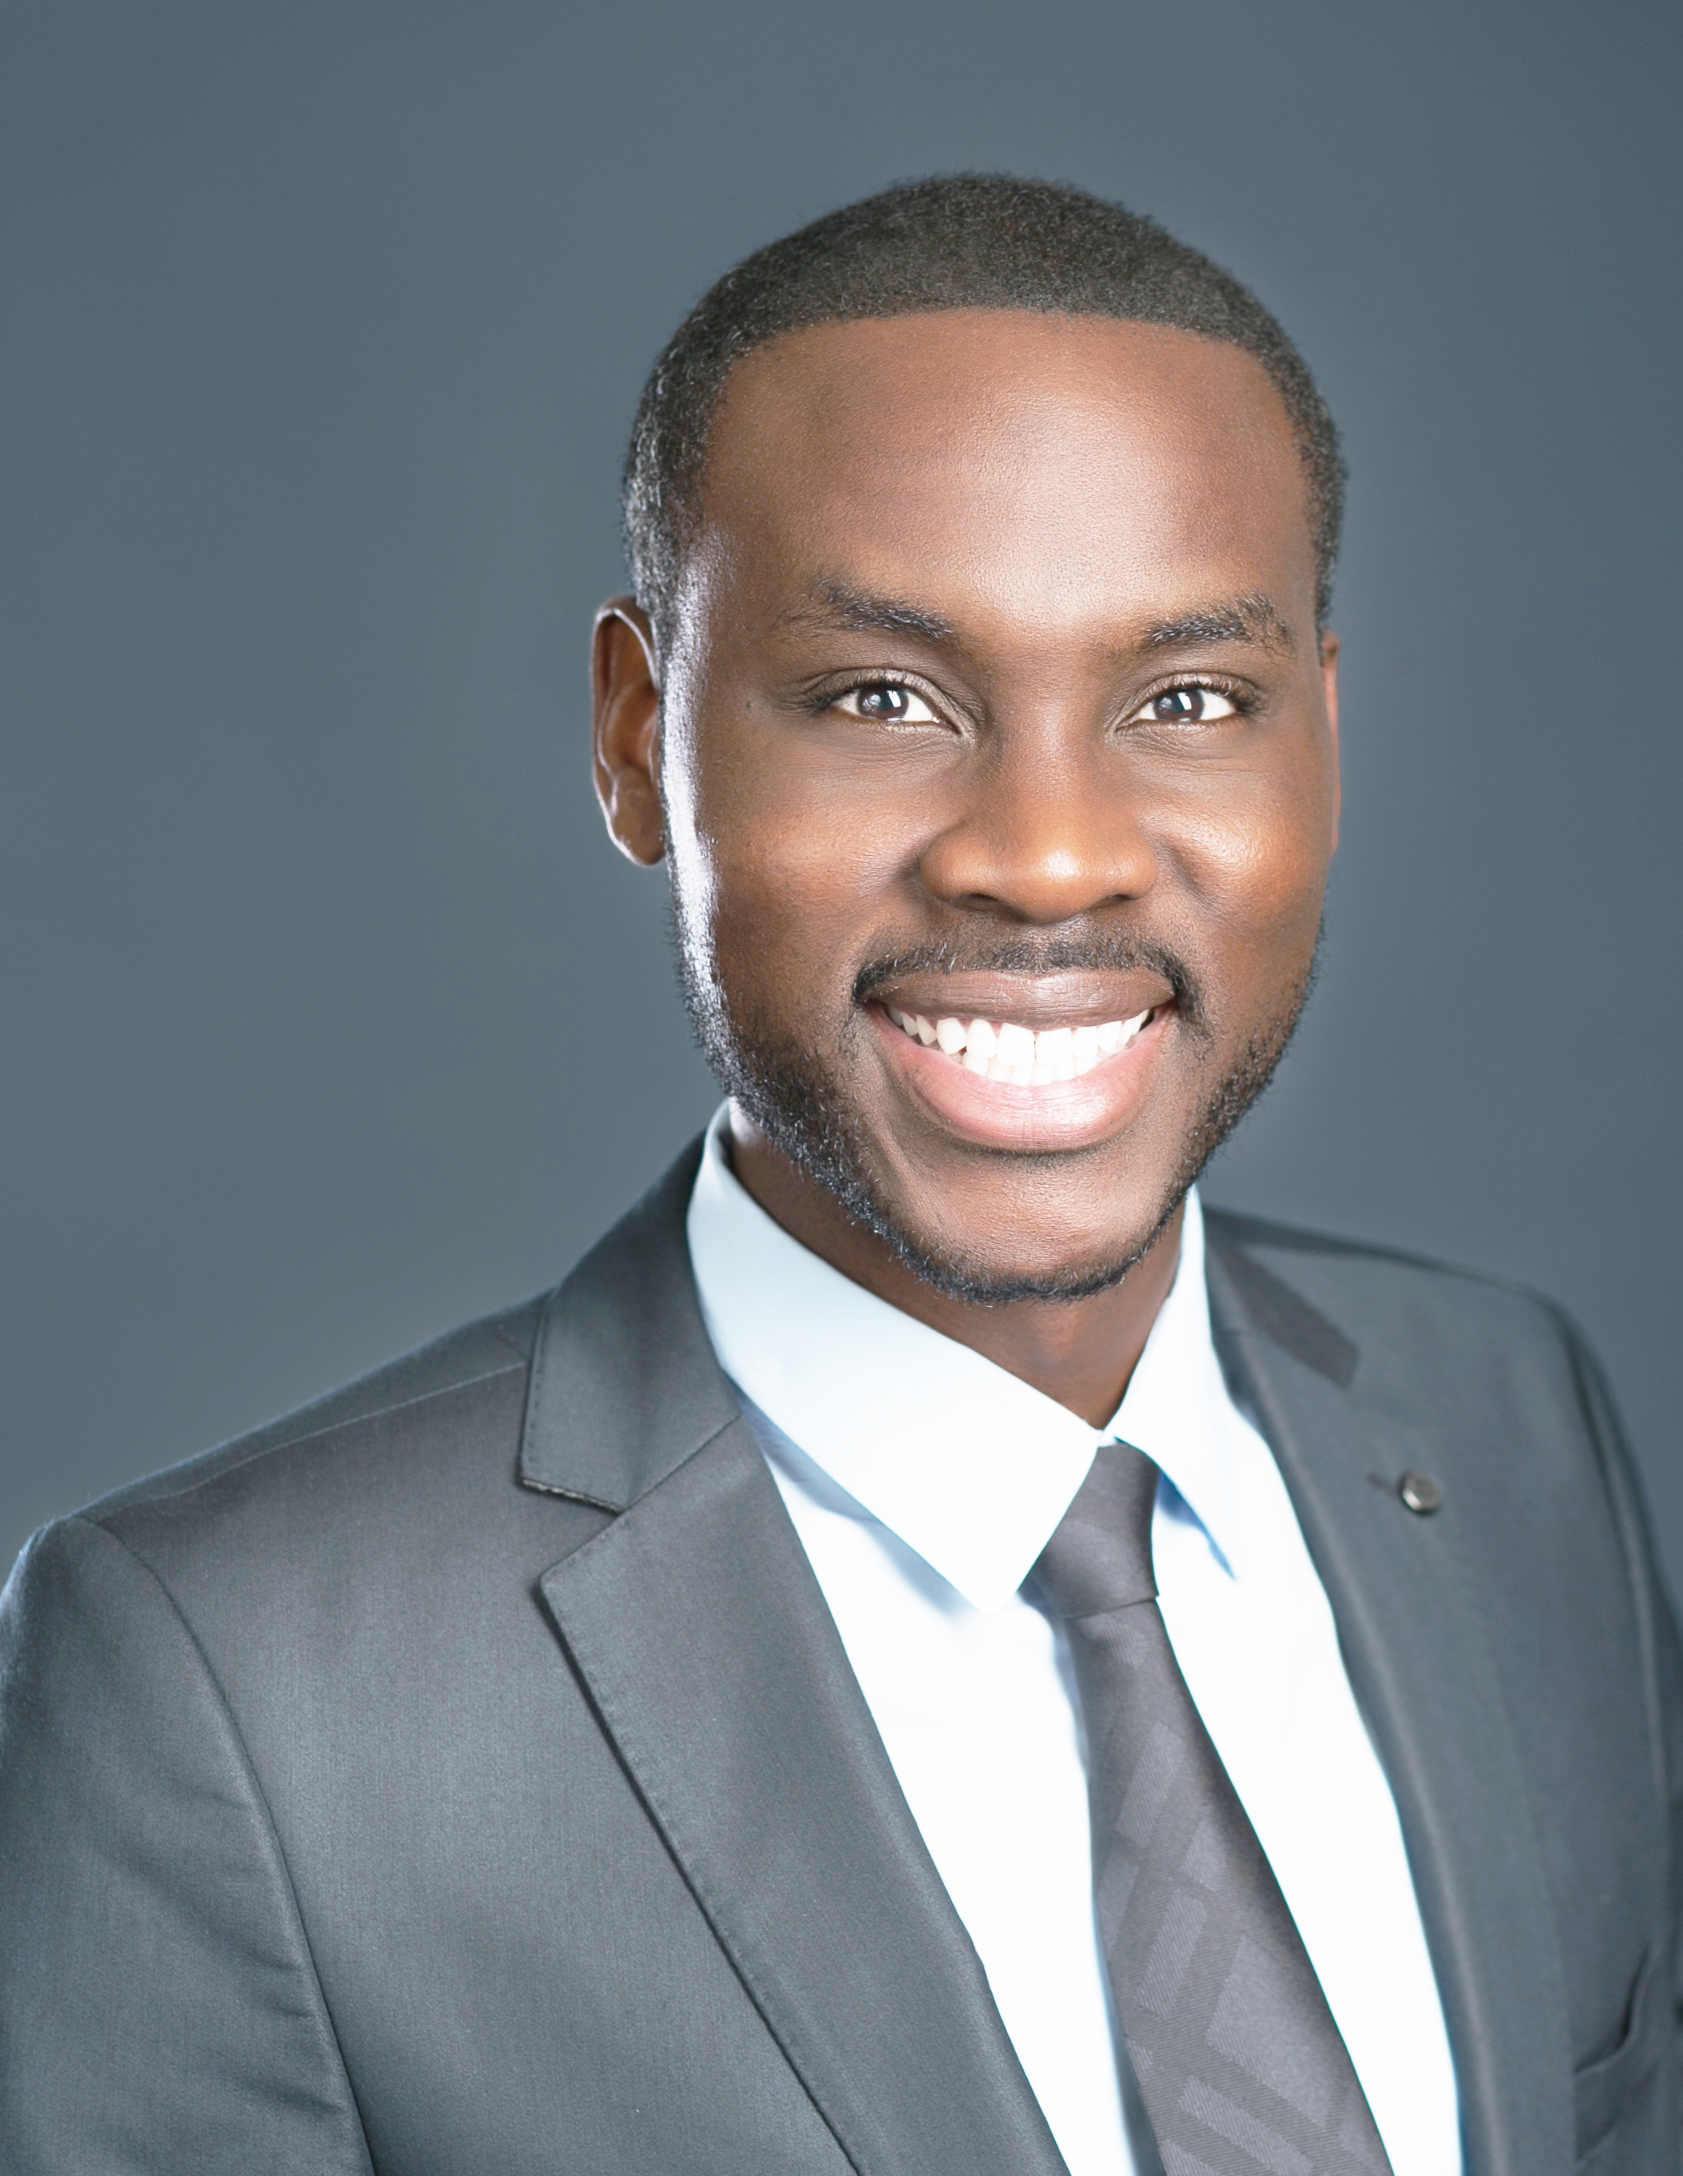 Meet Dr  Nkemakonam Egolum - Oral Surgeon in Bowie Maryland - Oral